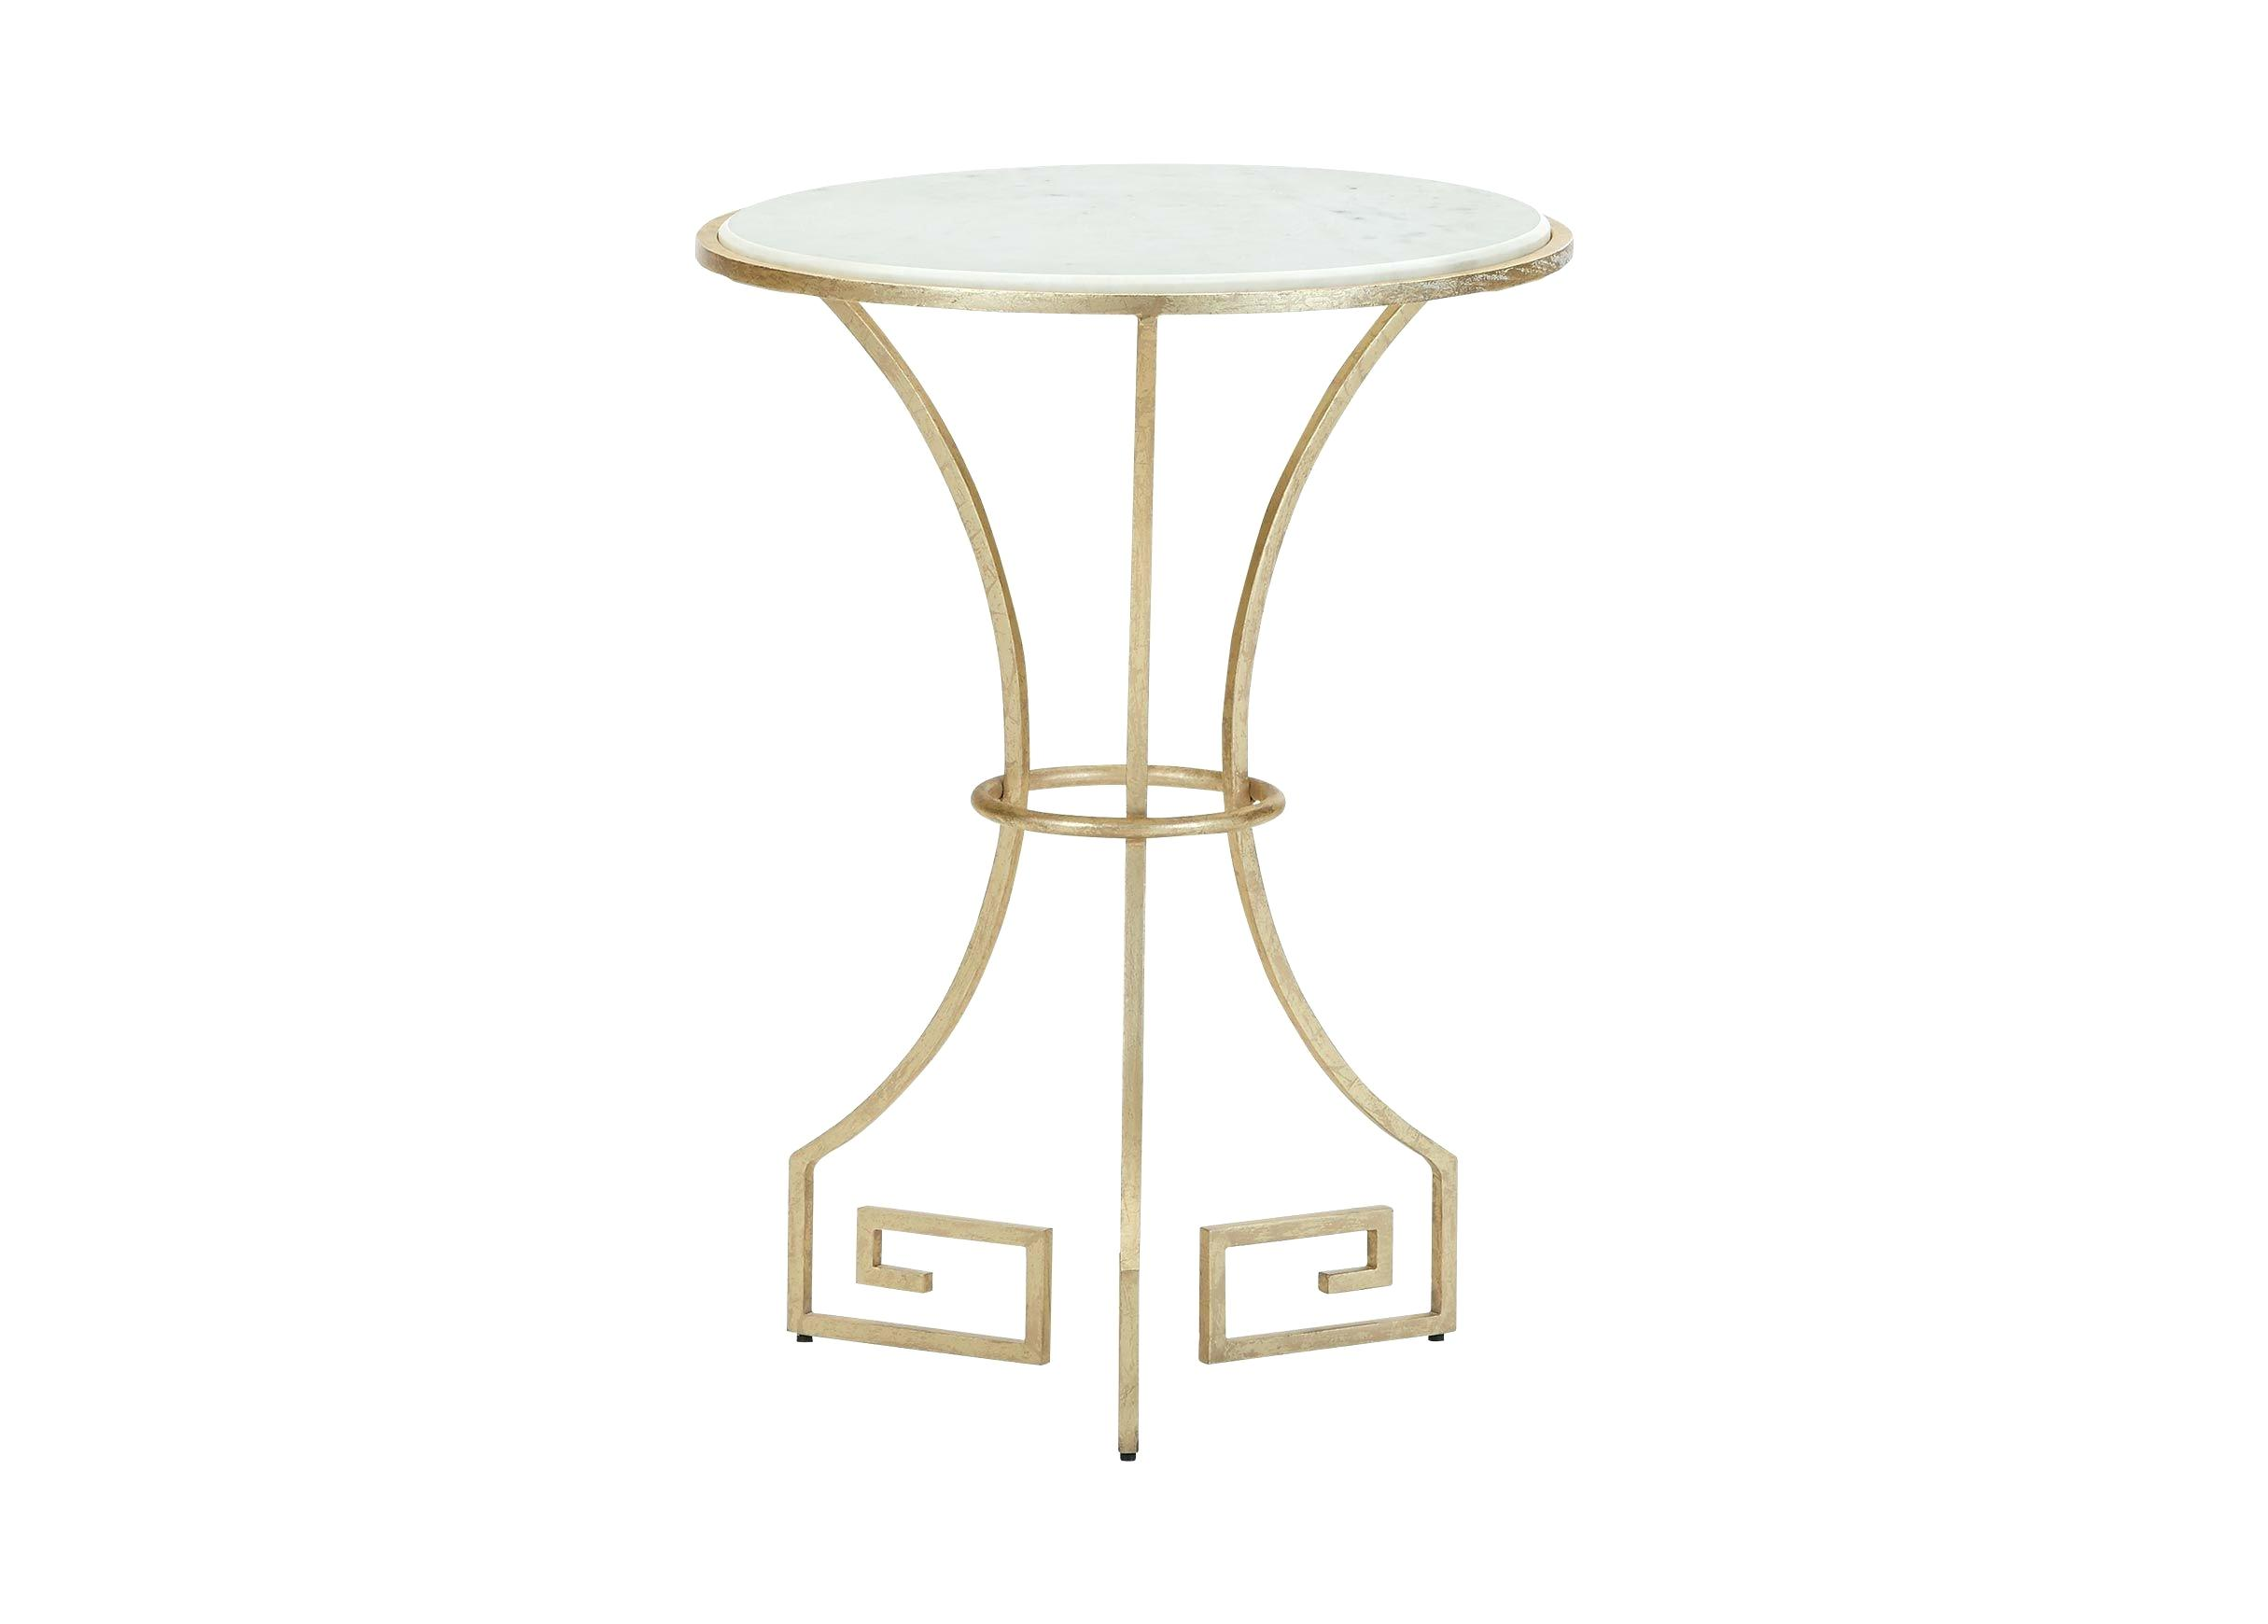 marble accent table gold round white and metal pedestal living modern oriental all qvc furniture quilted placemats dining tables toronto chairs oak drop leaf rustic end hardwood